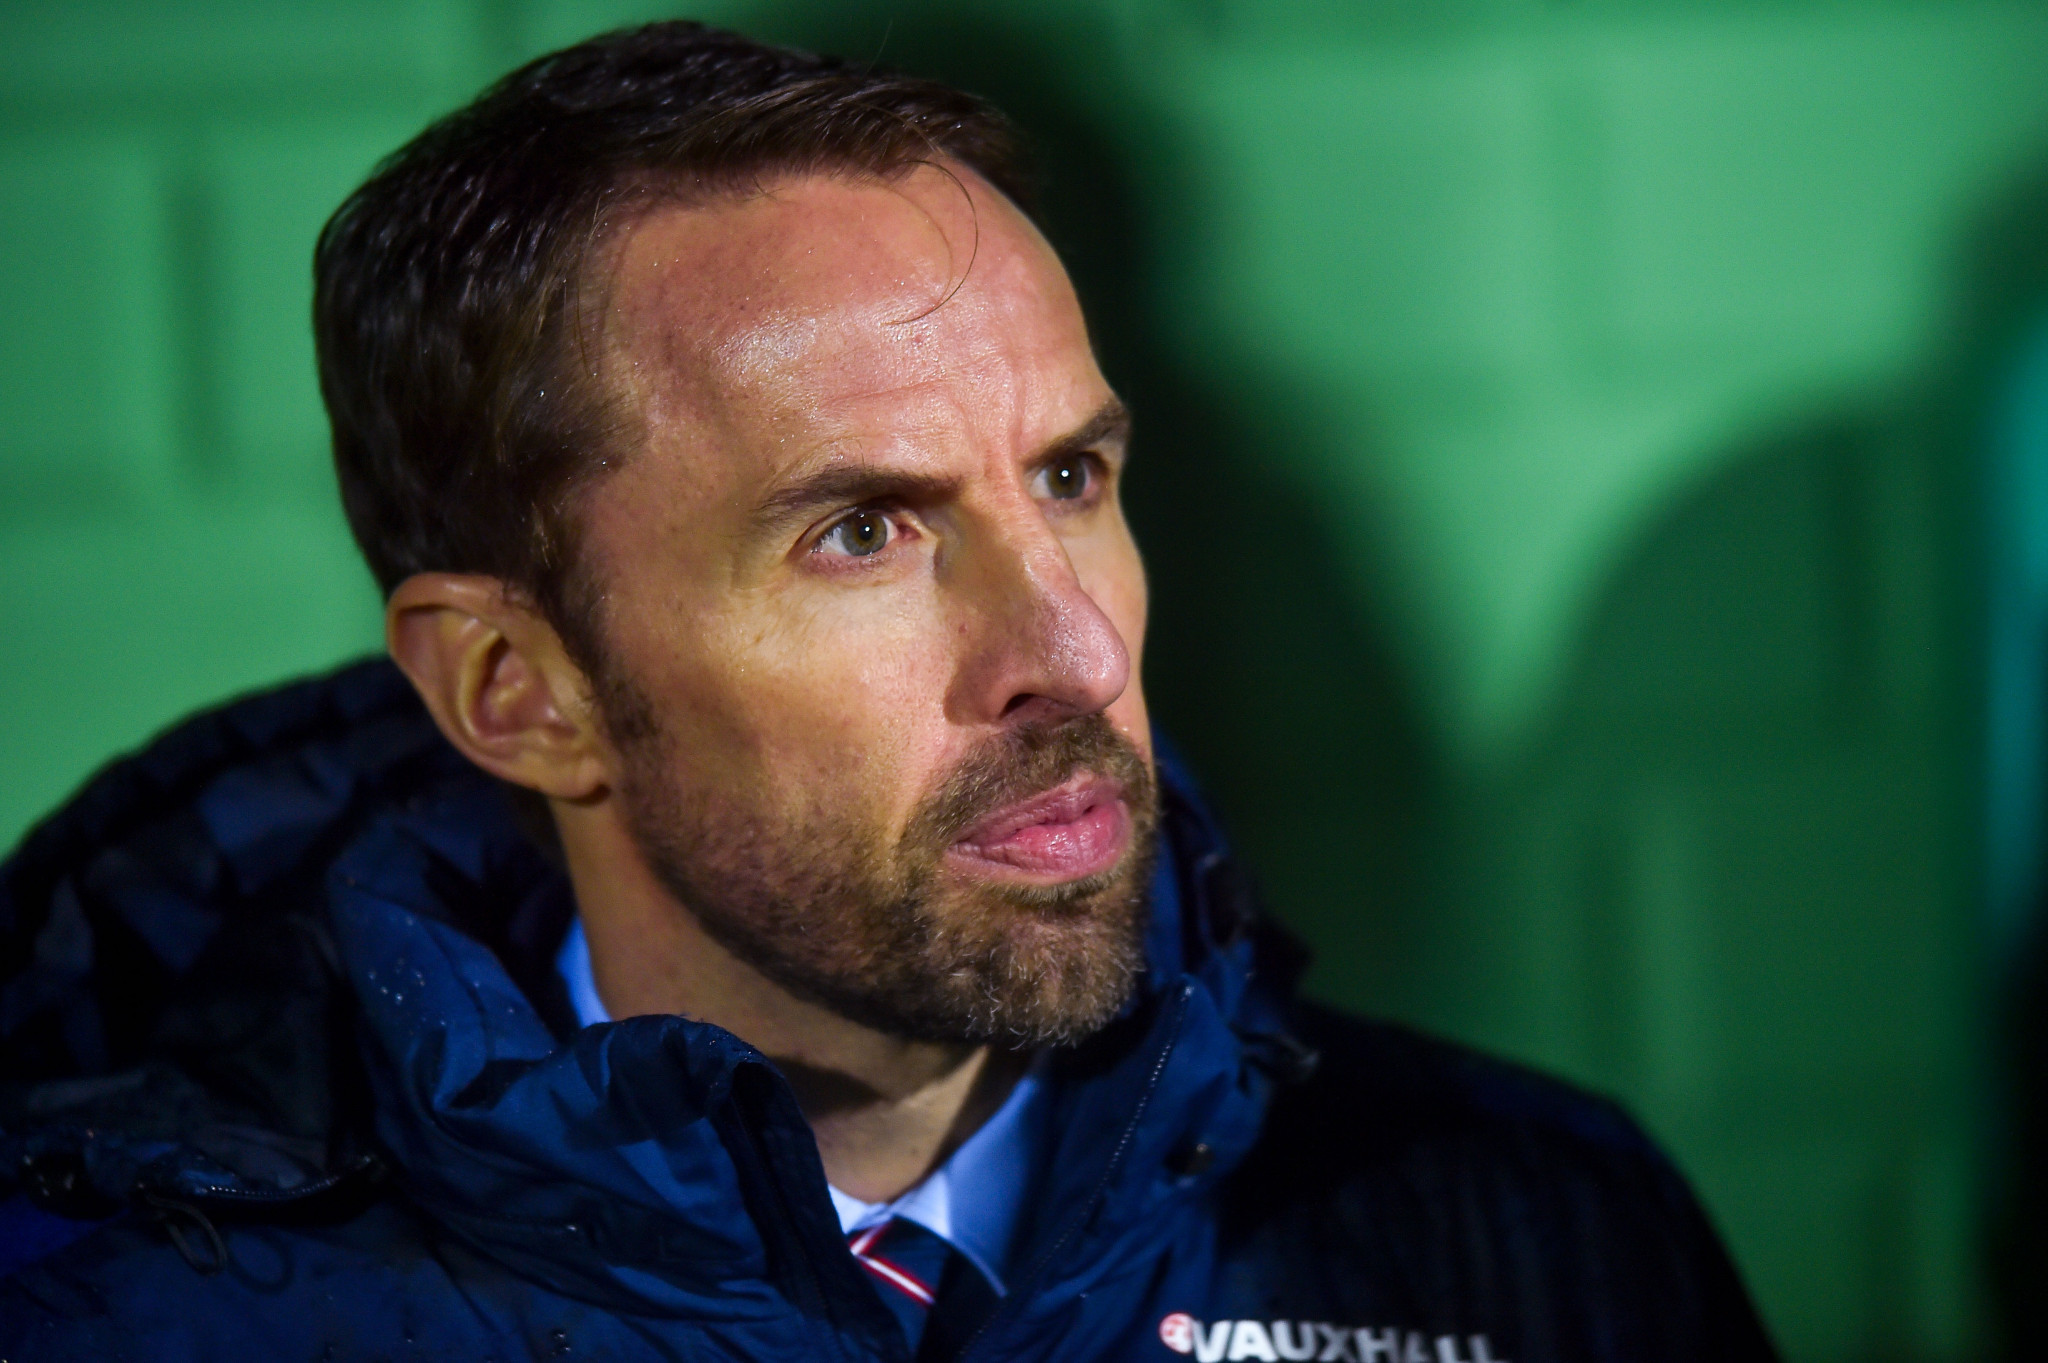 England head coach Gareth Southgate - there seems to be little improvement in the team's performance since he came to office ©Getty Images